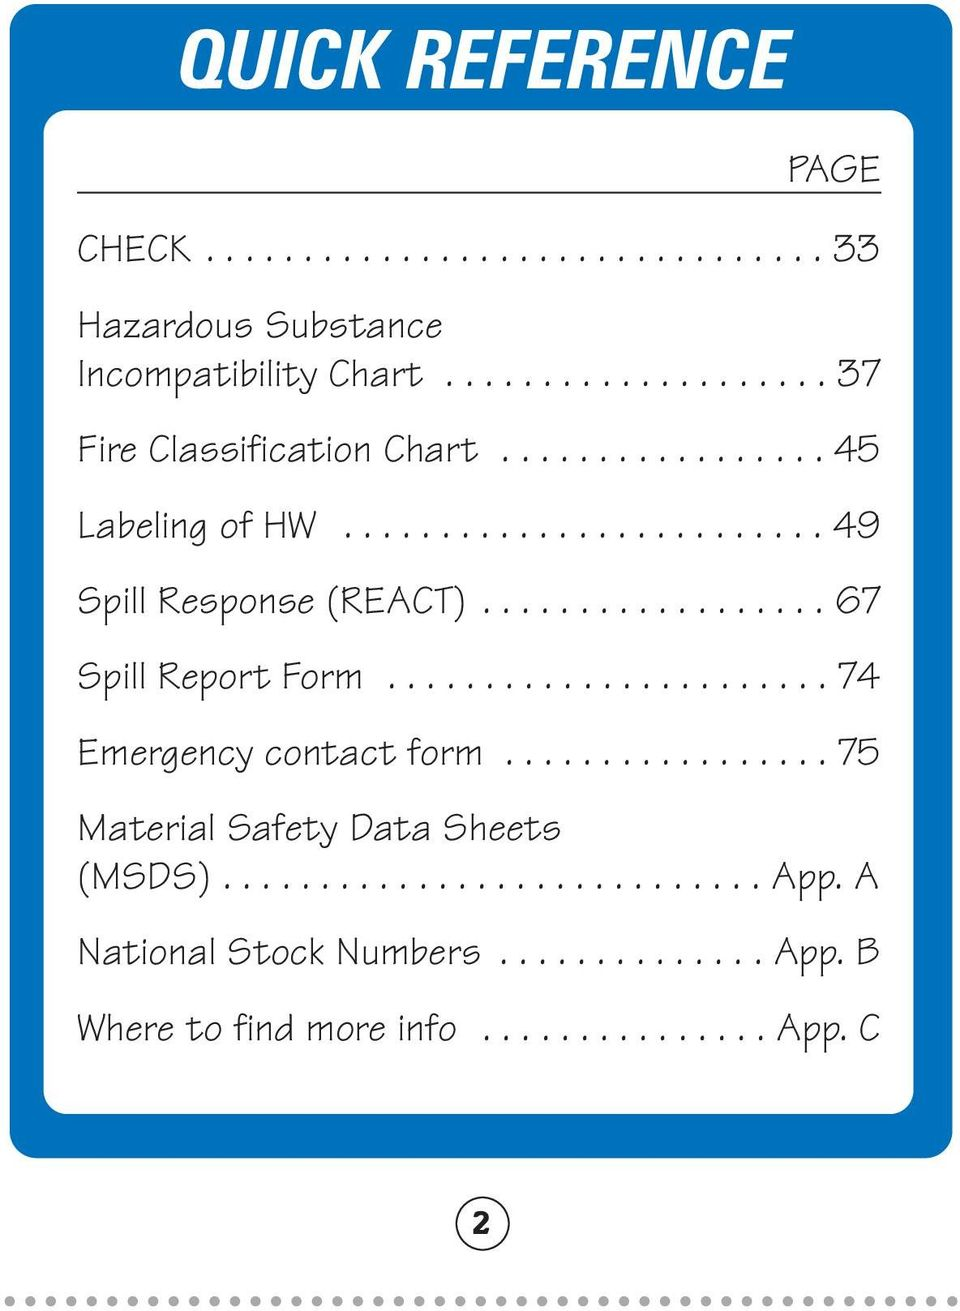 ................. 67 Spill Report Form....................... 74 Emergency contact form................. 75 Material Safety Data Sheets (MSDS).